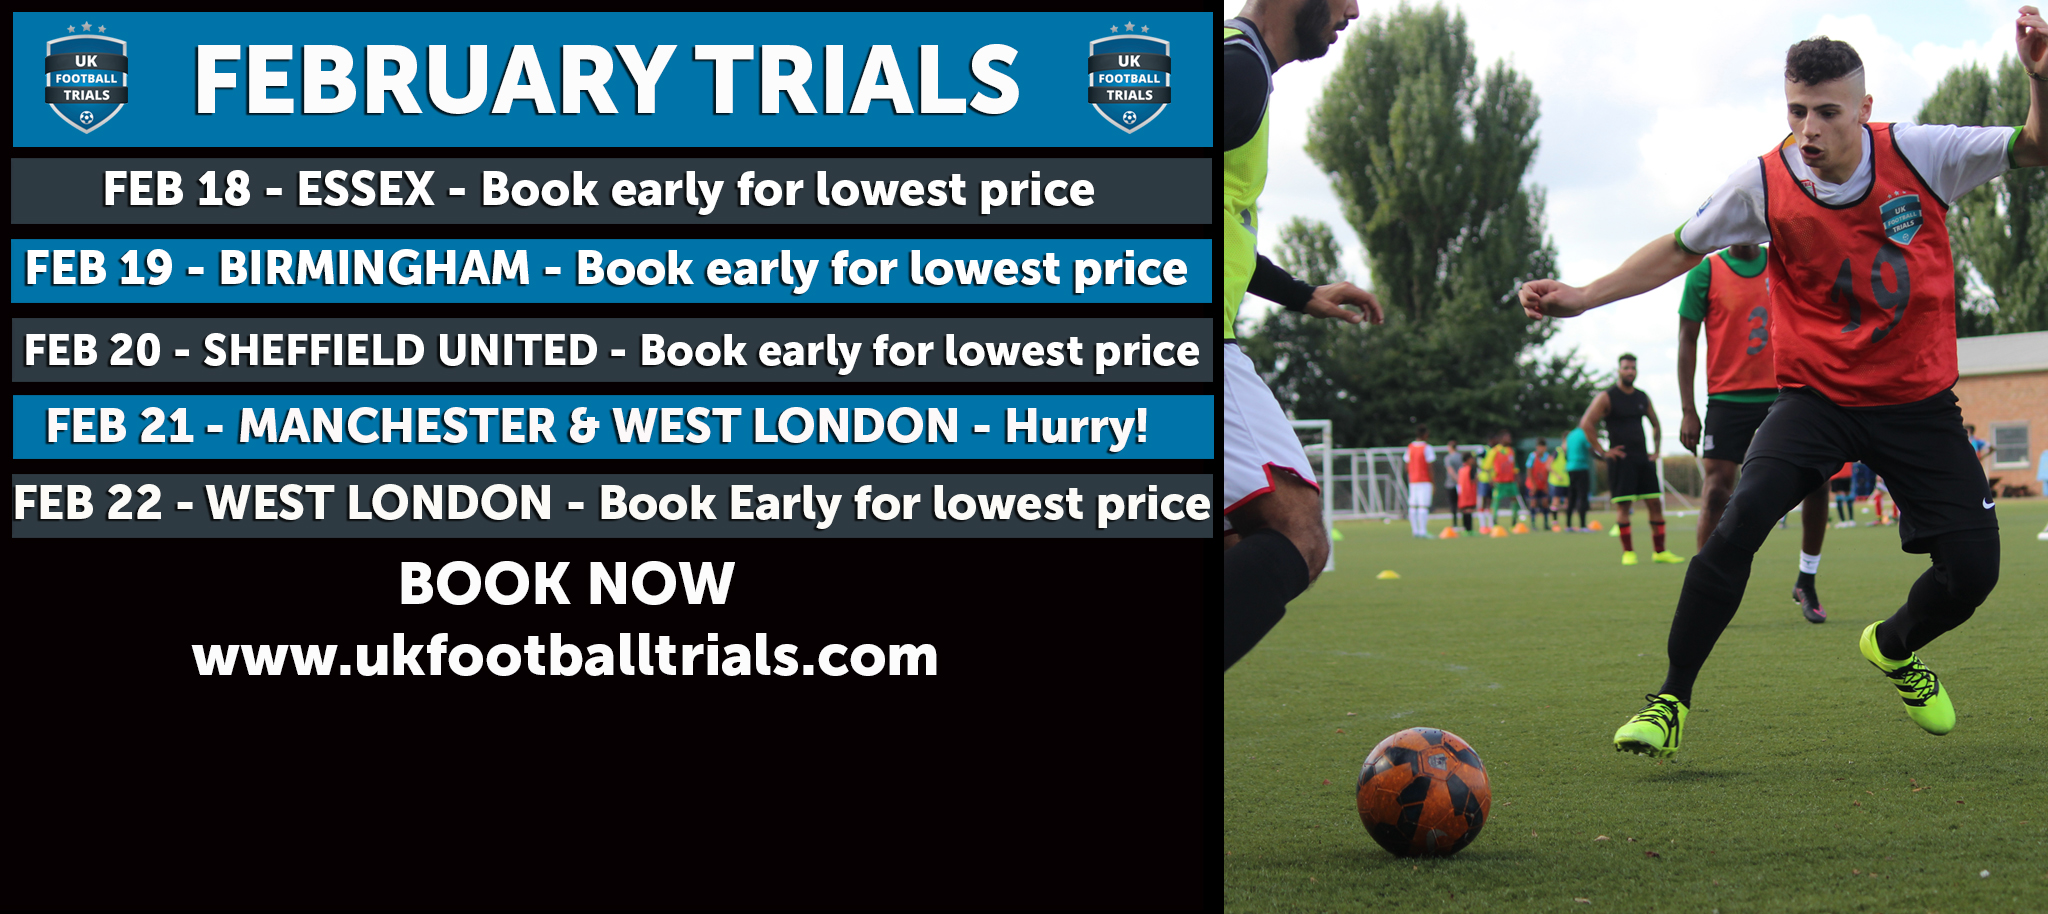 | UK Football Trials